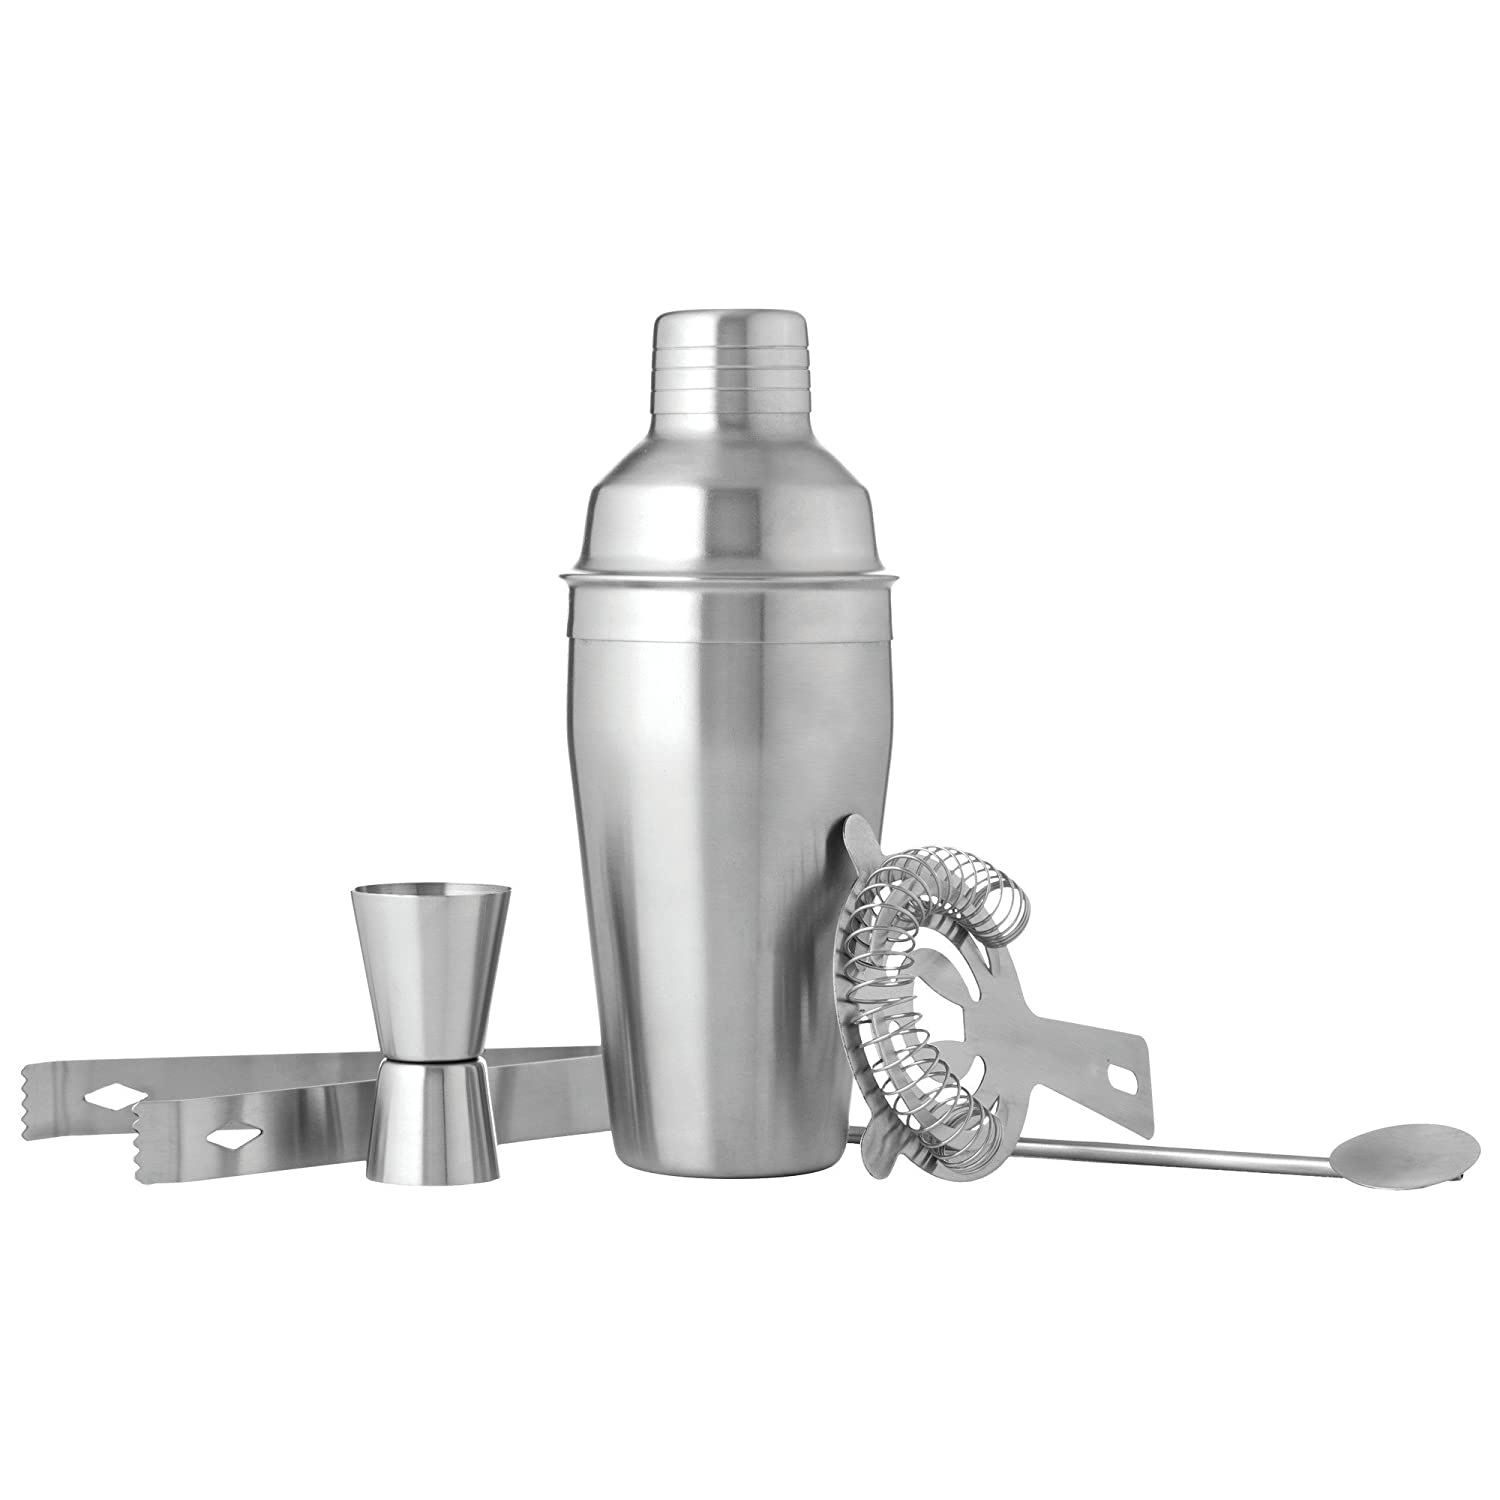 Wyndham House Cocktail Shaker Set for the Home Bar, Great for Martinis, Stainless Steel, 5-Piece